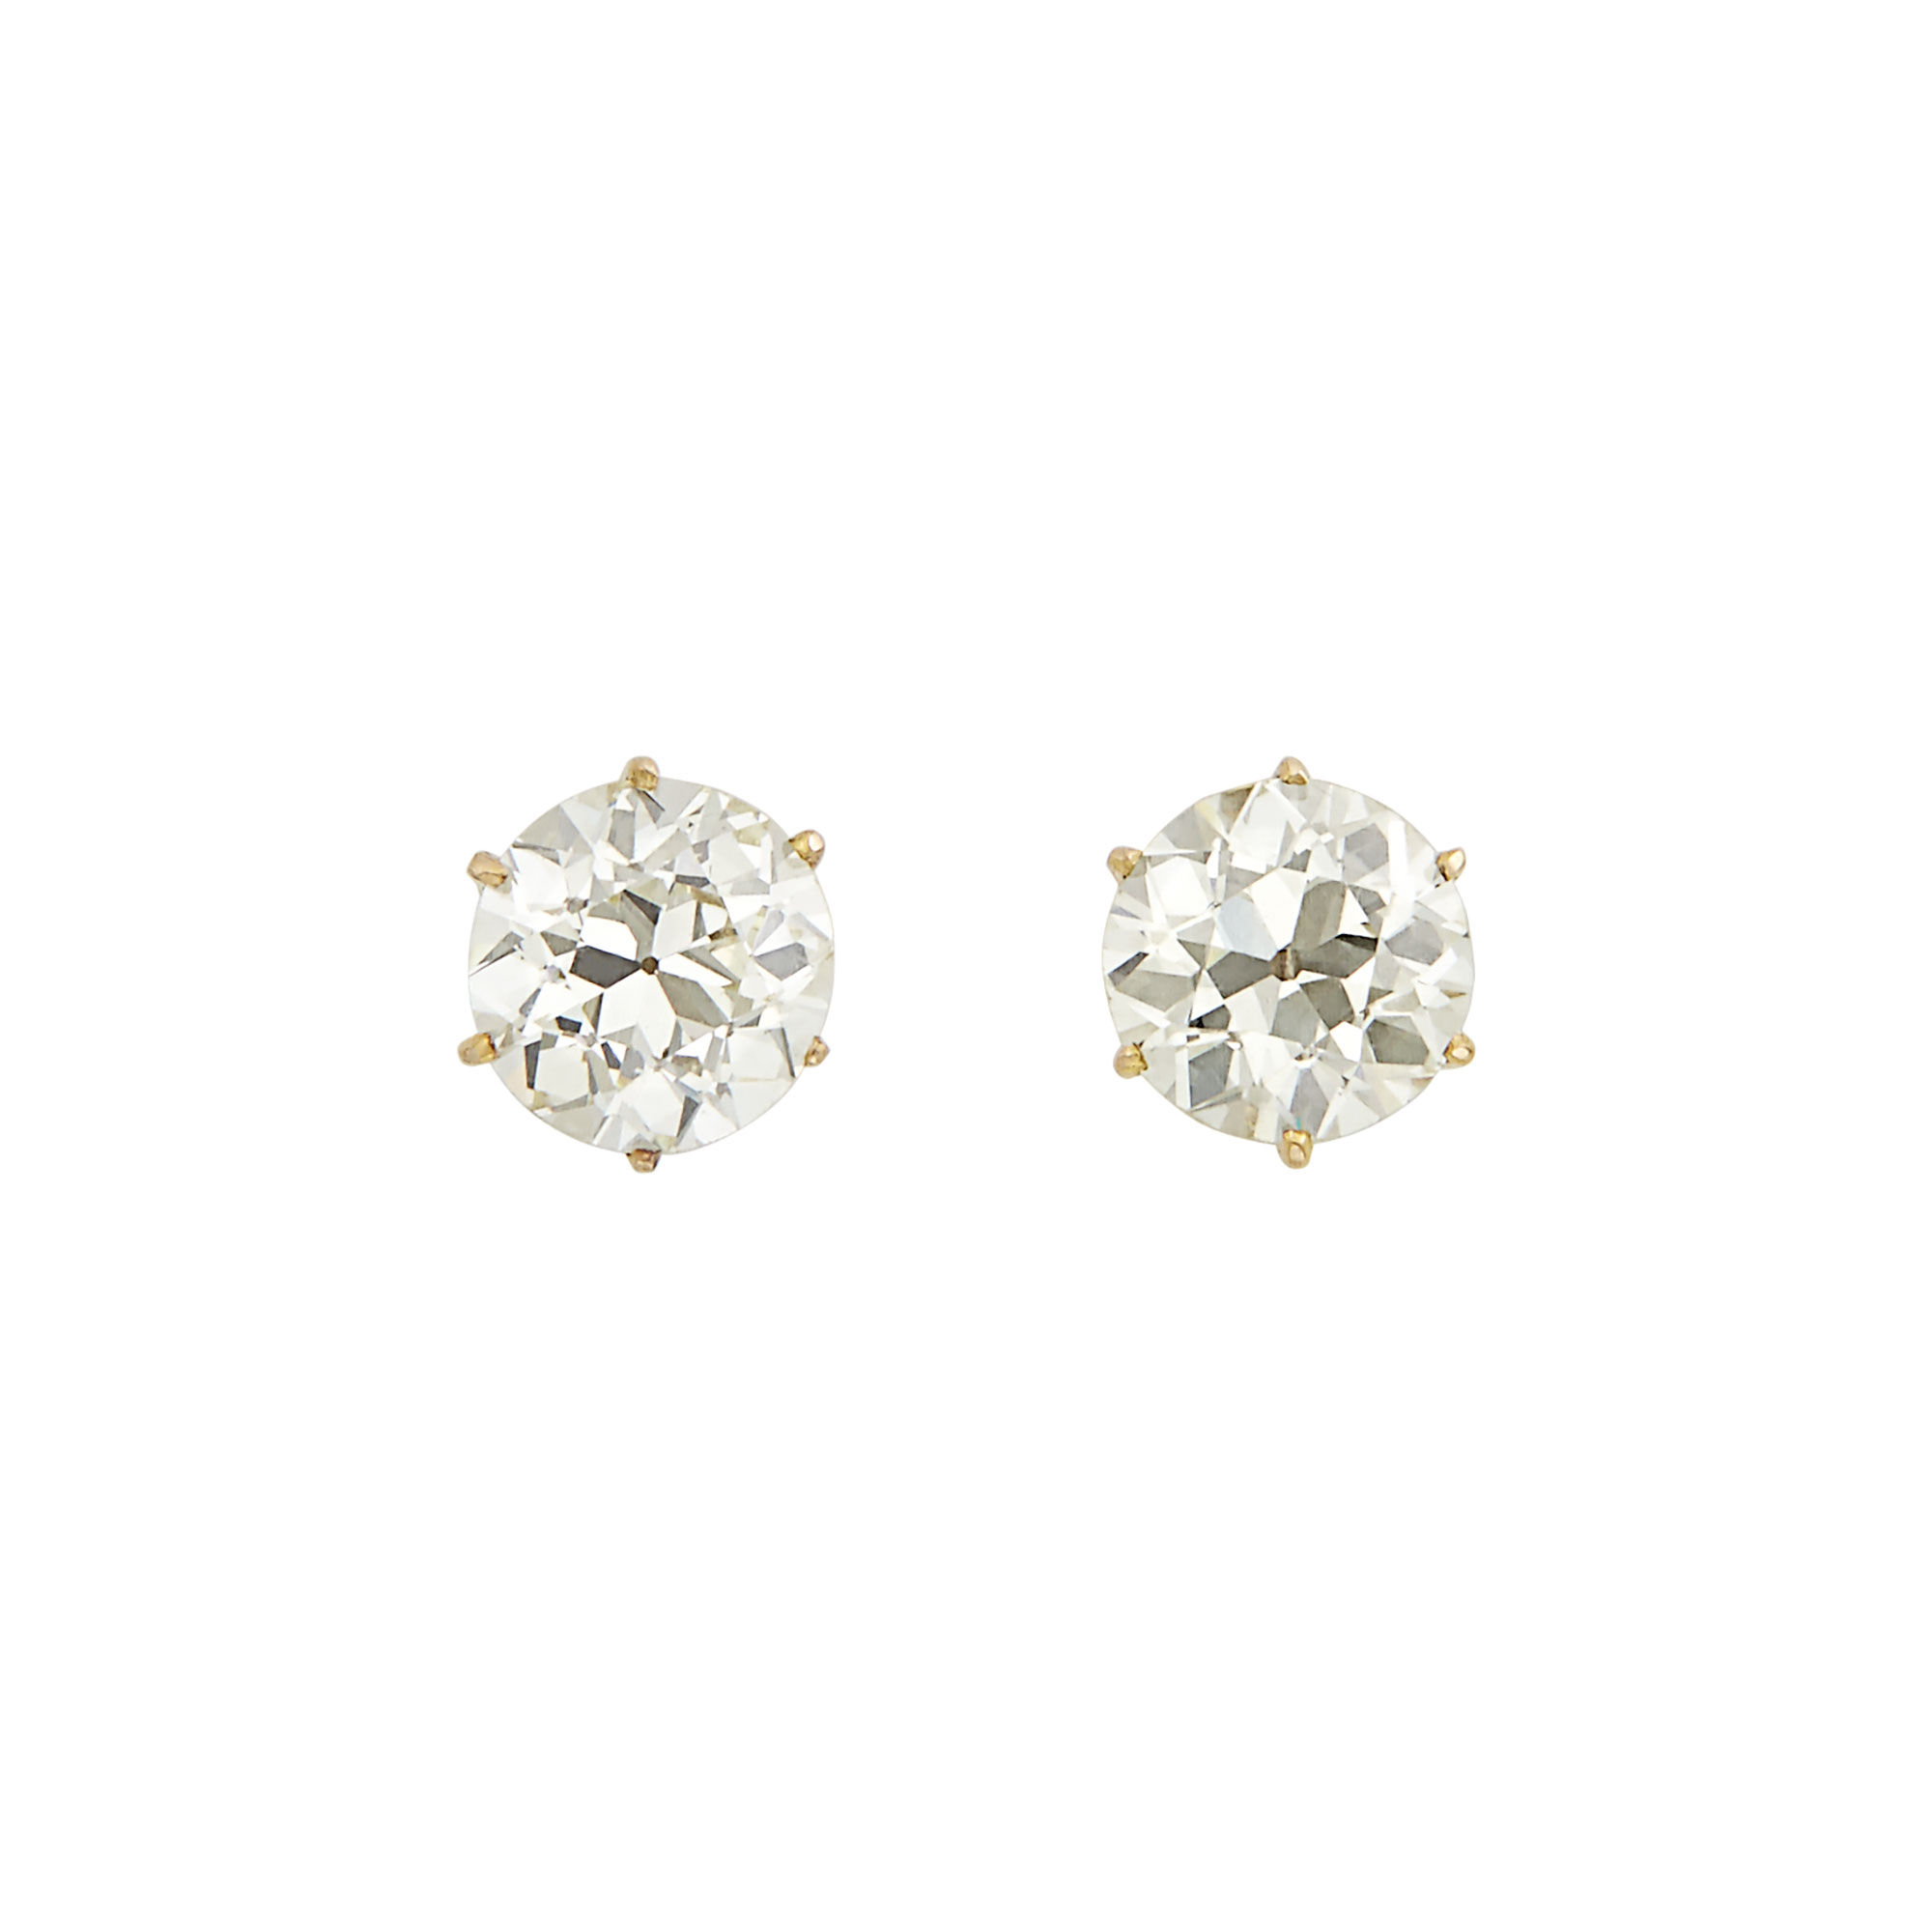 Lot image - Pair of Gold and Diamond Stud Earrings